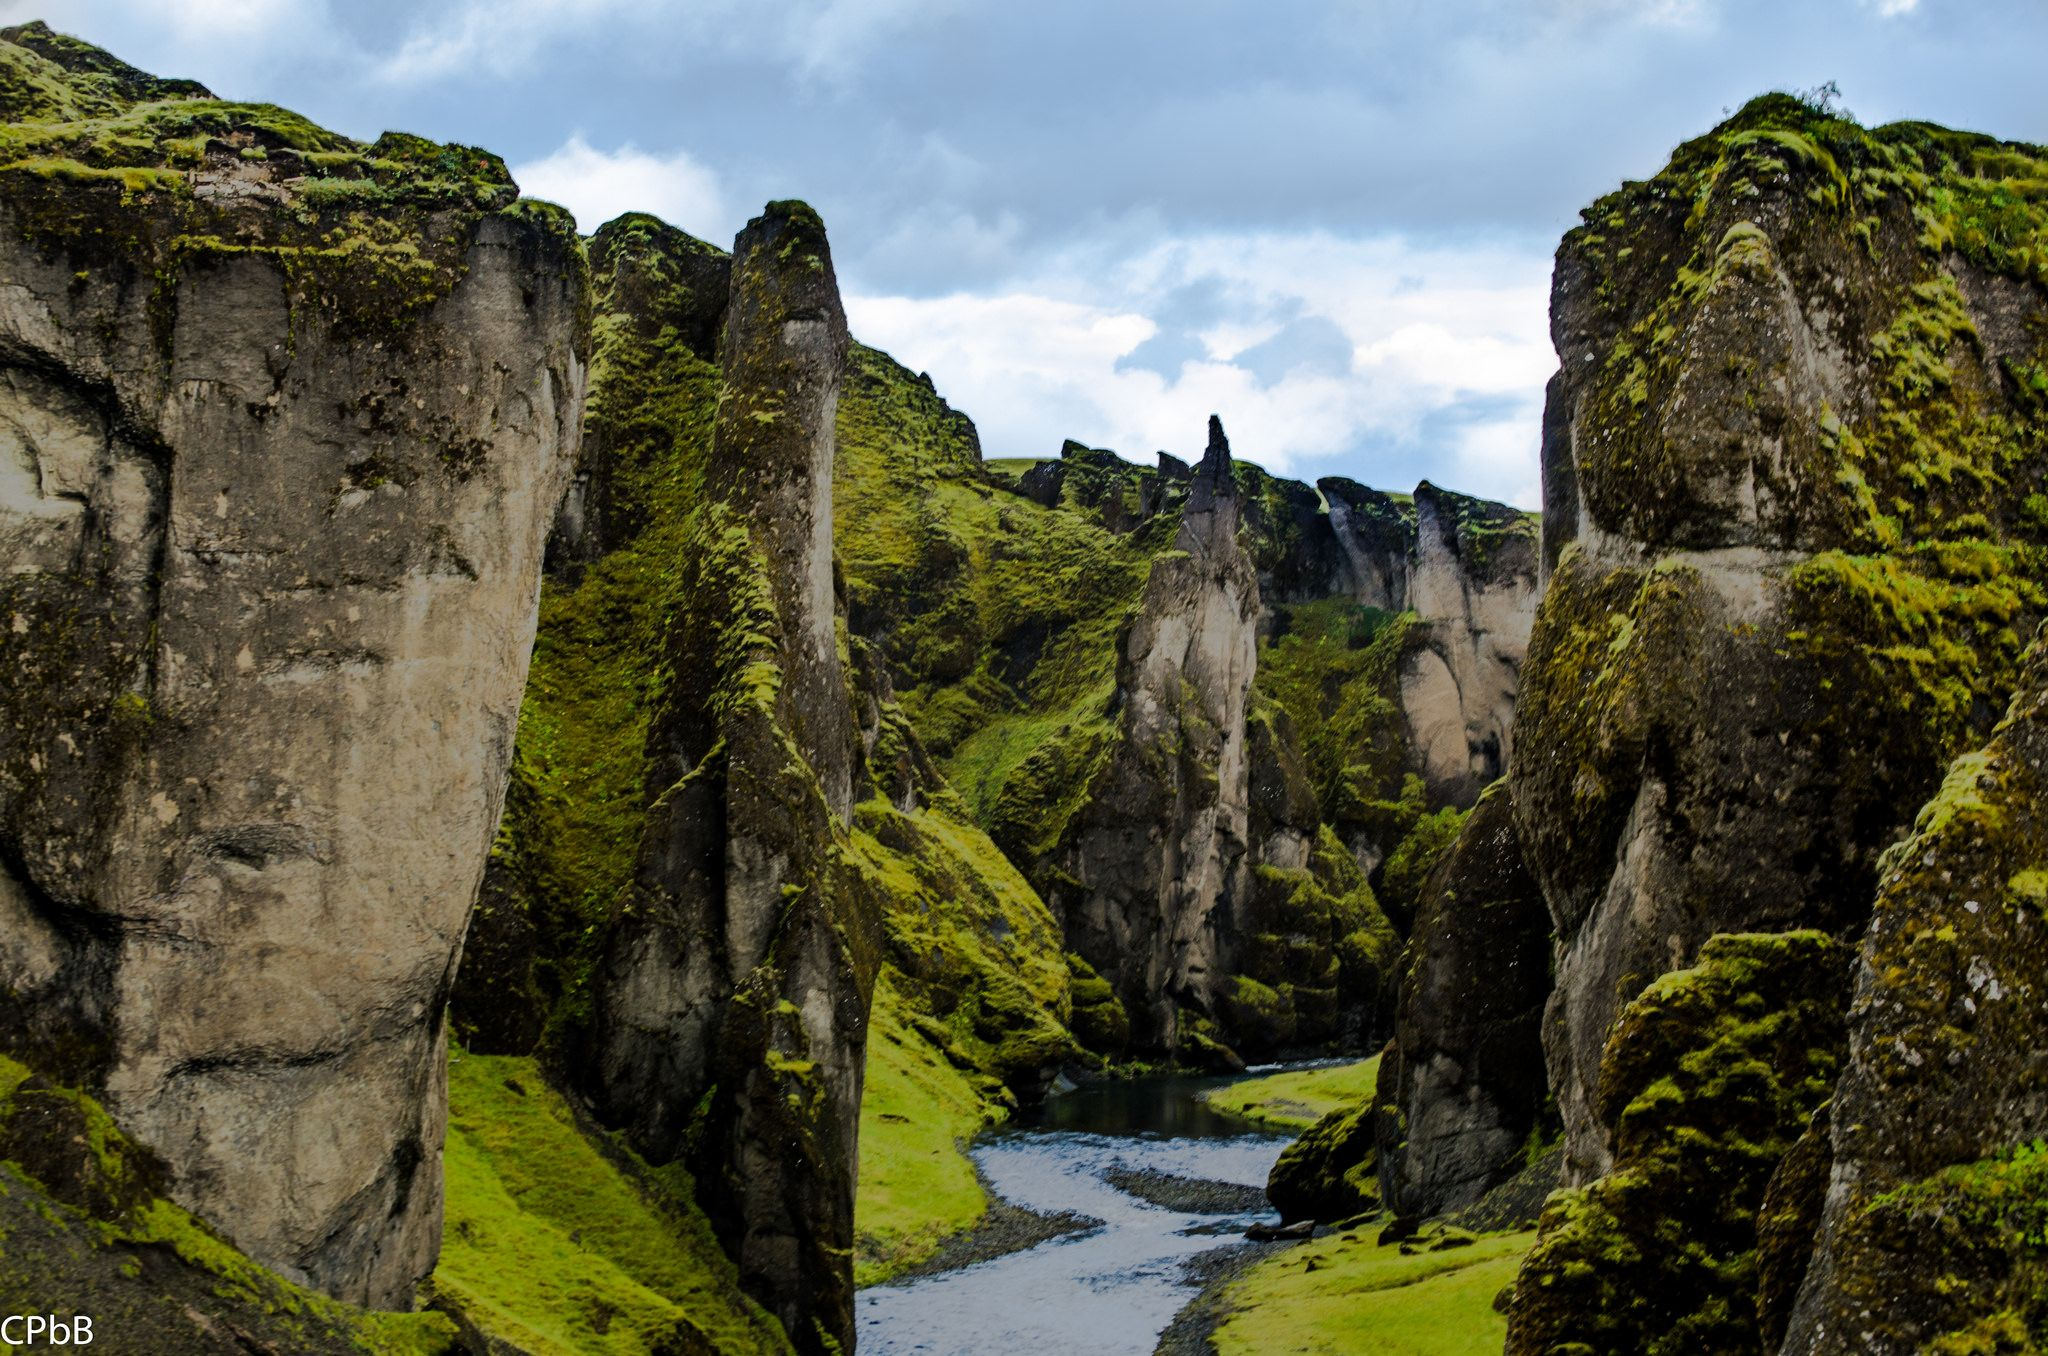 https://flic.kr/p/oVkmvX | Fjaðrárgljúfur | Fjaðrárgljúfur canyon is located in south east Iceland.  The Fjaðrá river flows through the center of it.  The canyon is a drive down a dirt road off of route one, also called Ring Road.  The canyon is about 100m deep and 2km long.